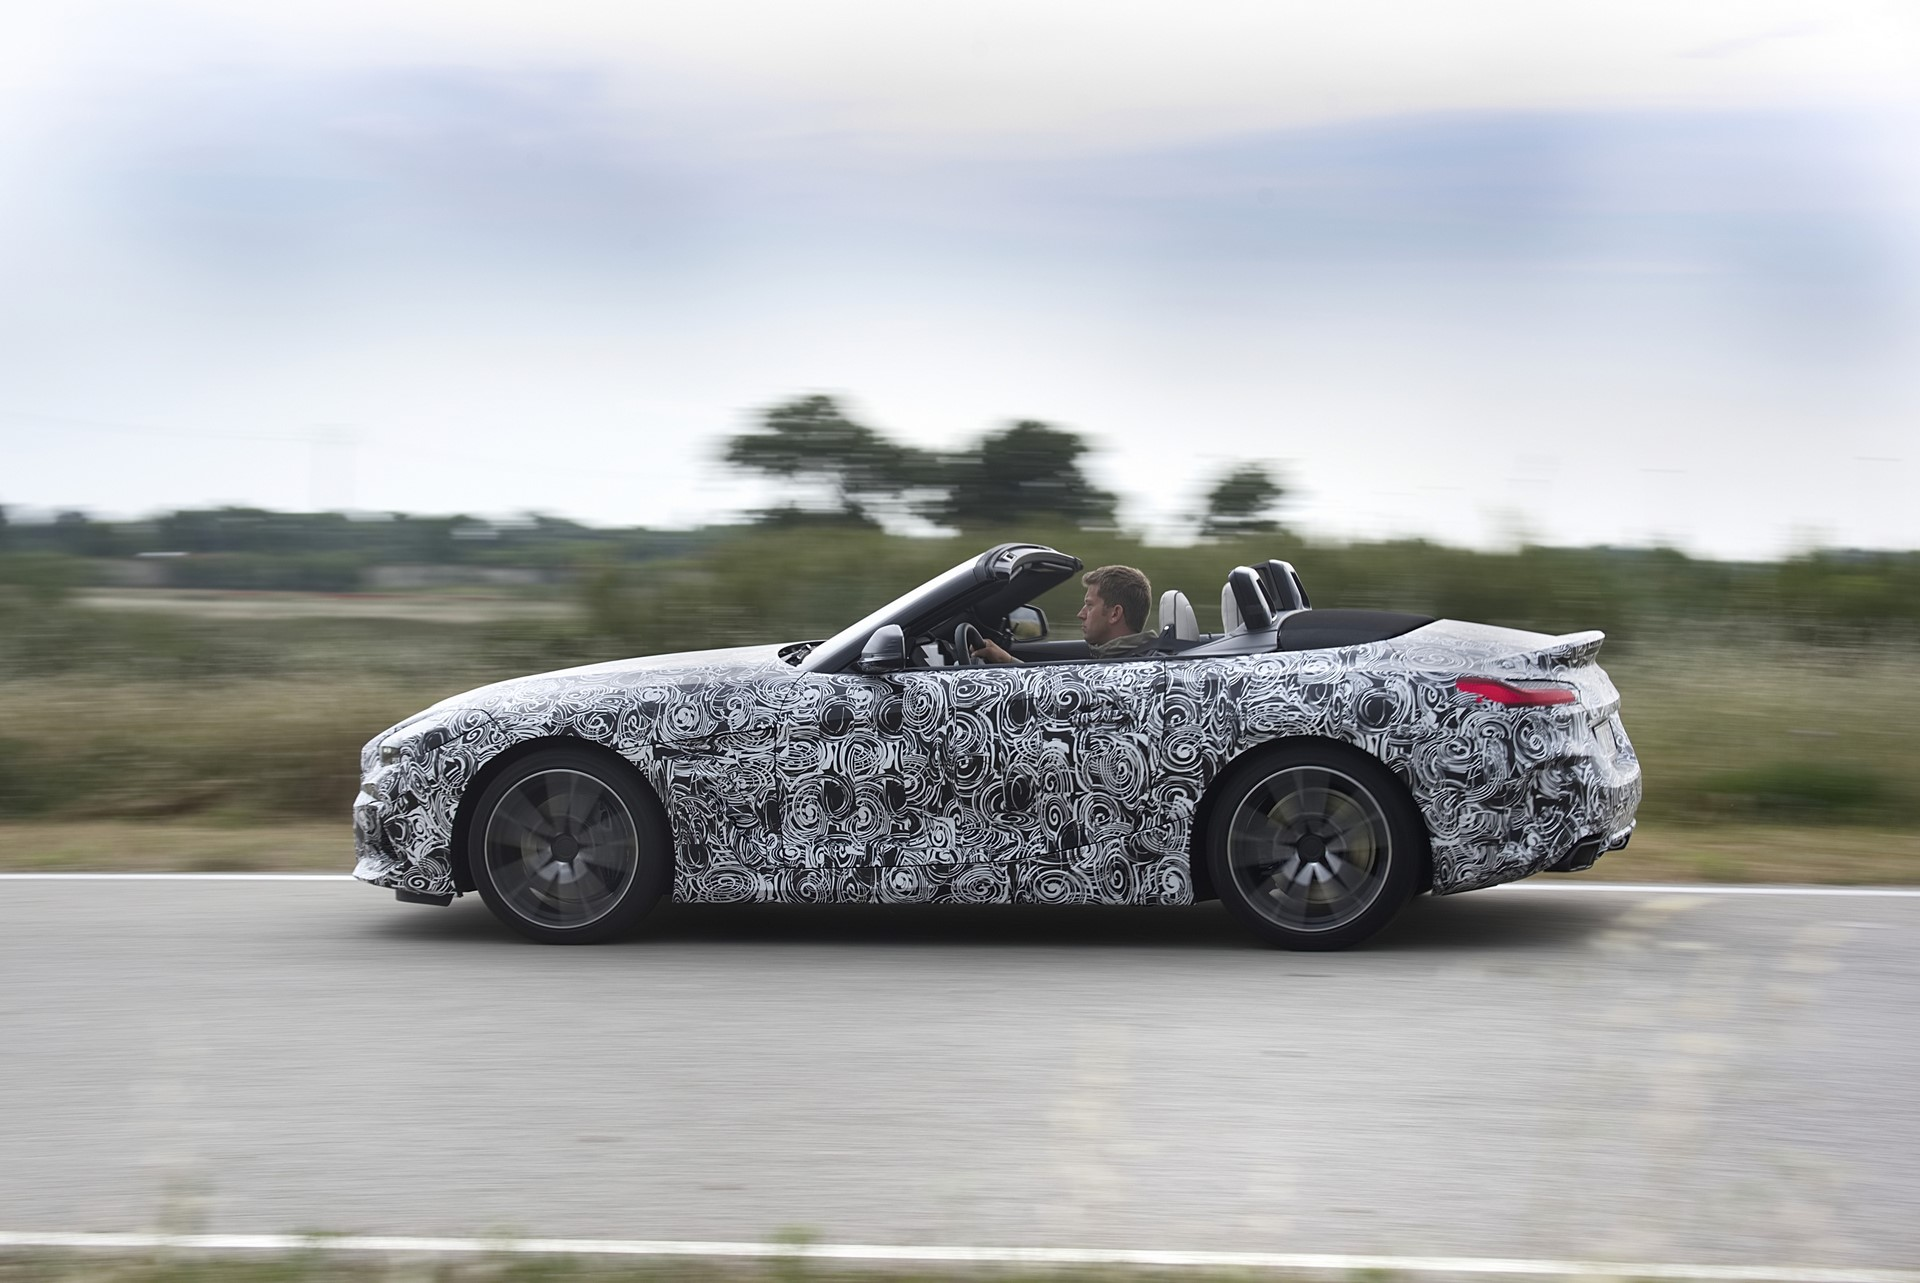 BMW Z4 M40i 2019 official spy photos (18)